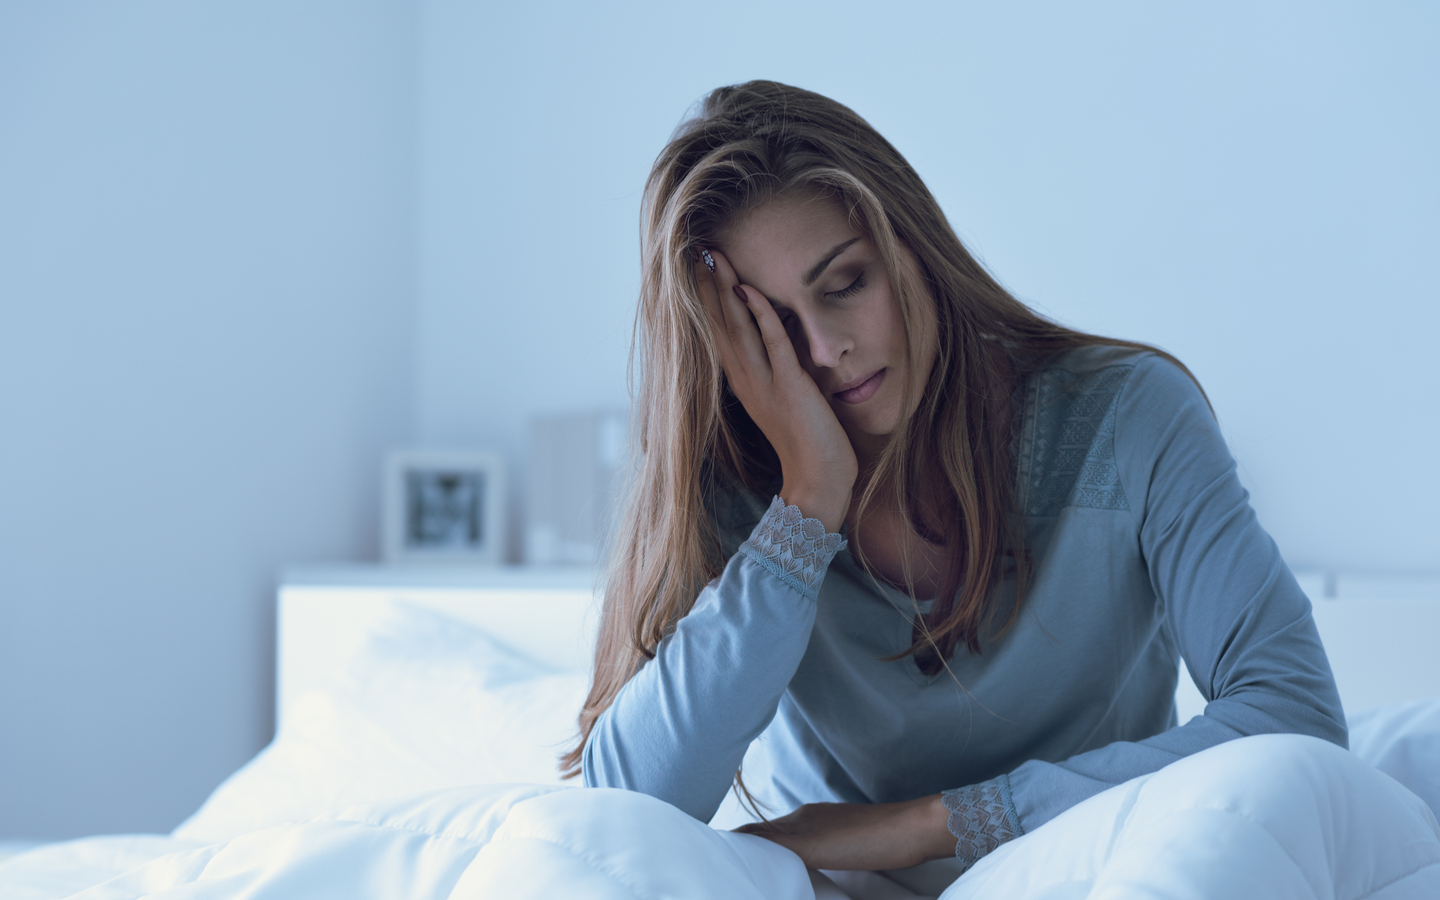 A depressed woman seems to have a headache